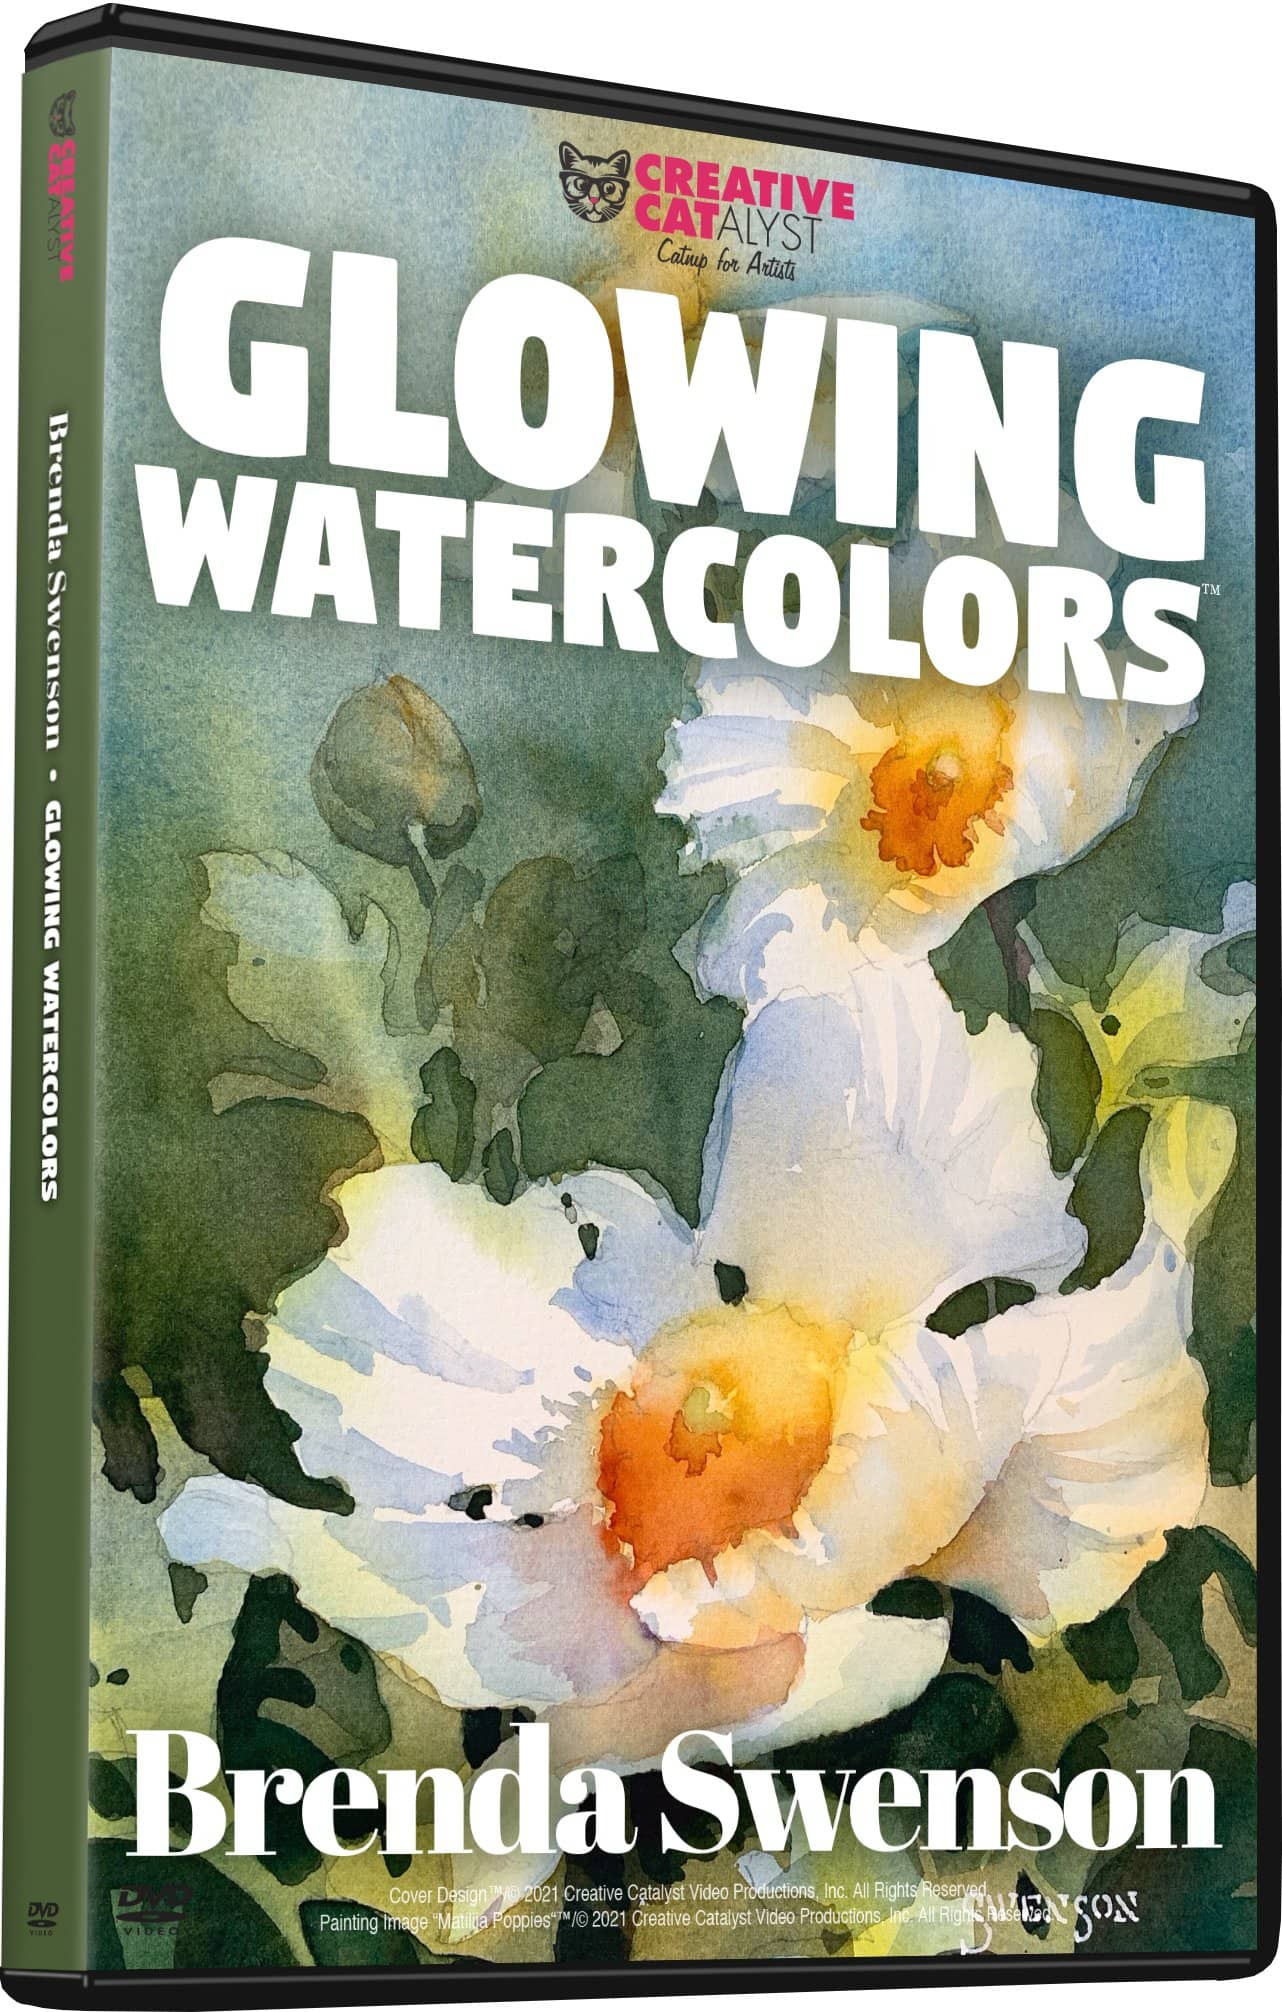 Glowing Watercolors with Brenda Swenson